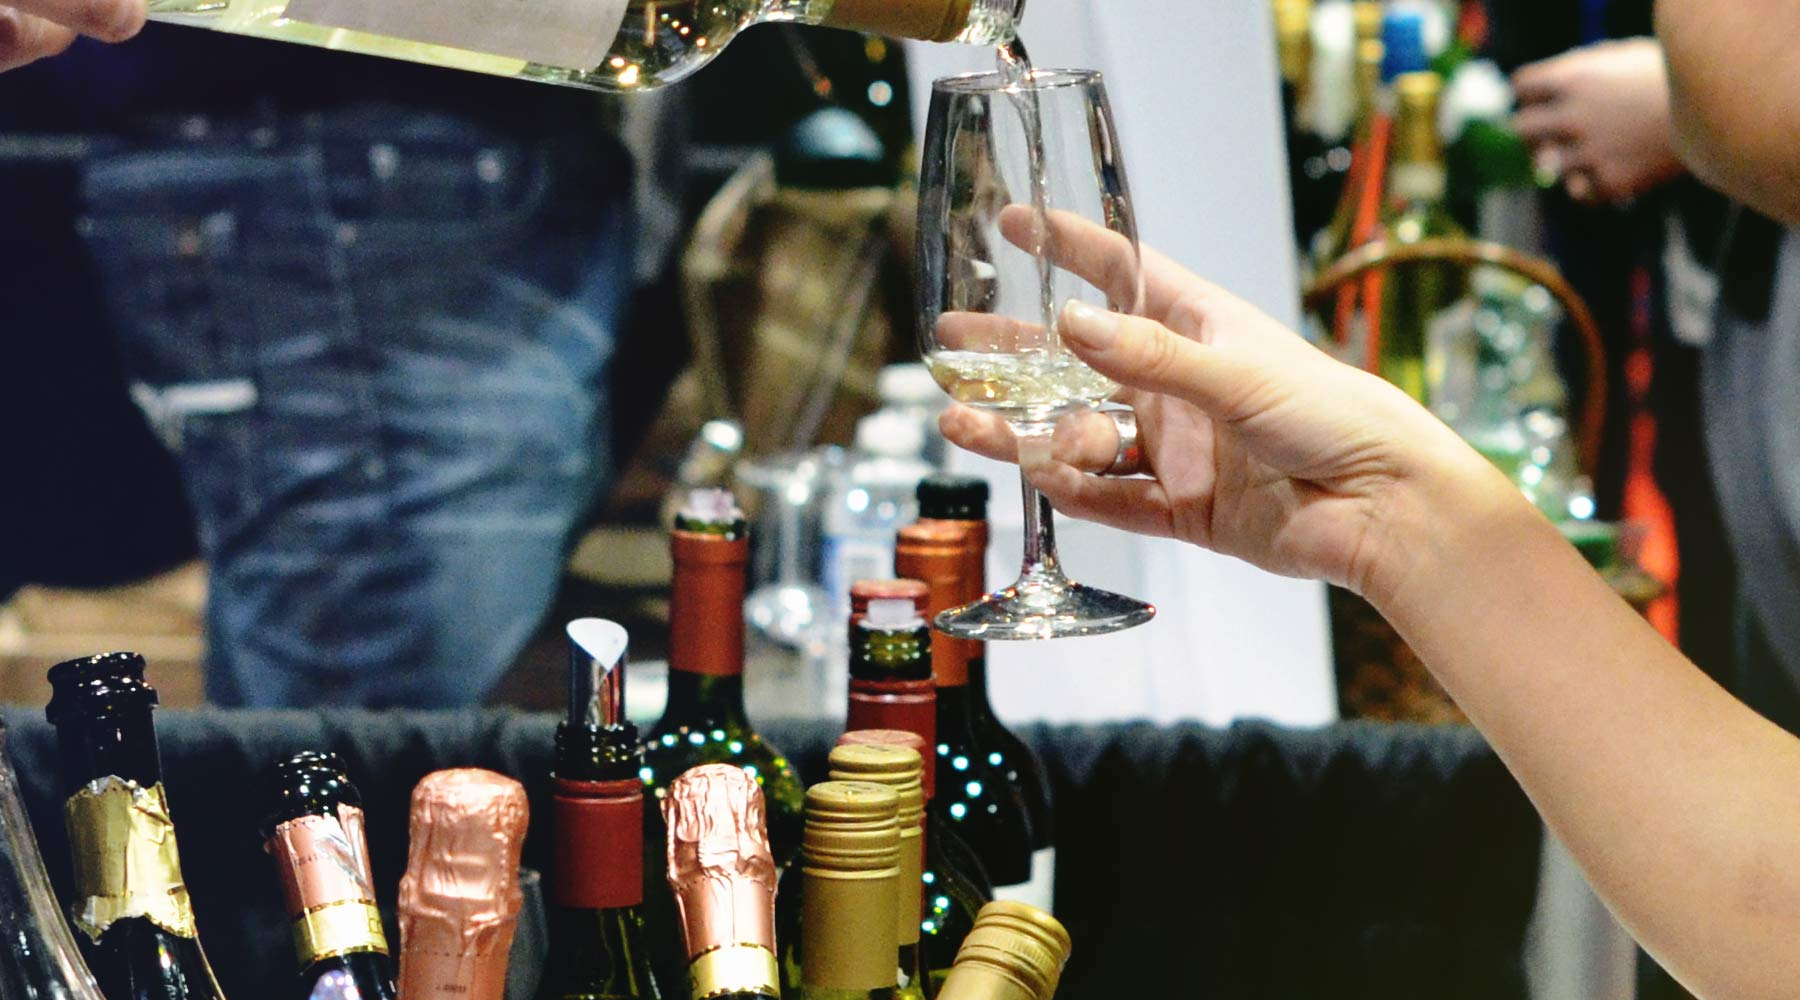 Wine Tours Toronto Presents: Award Winning Wine Tour | Just Wine